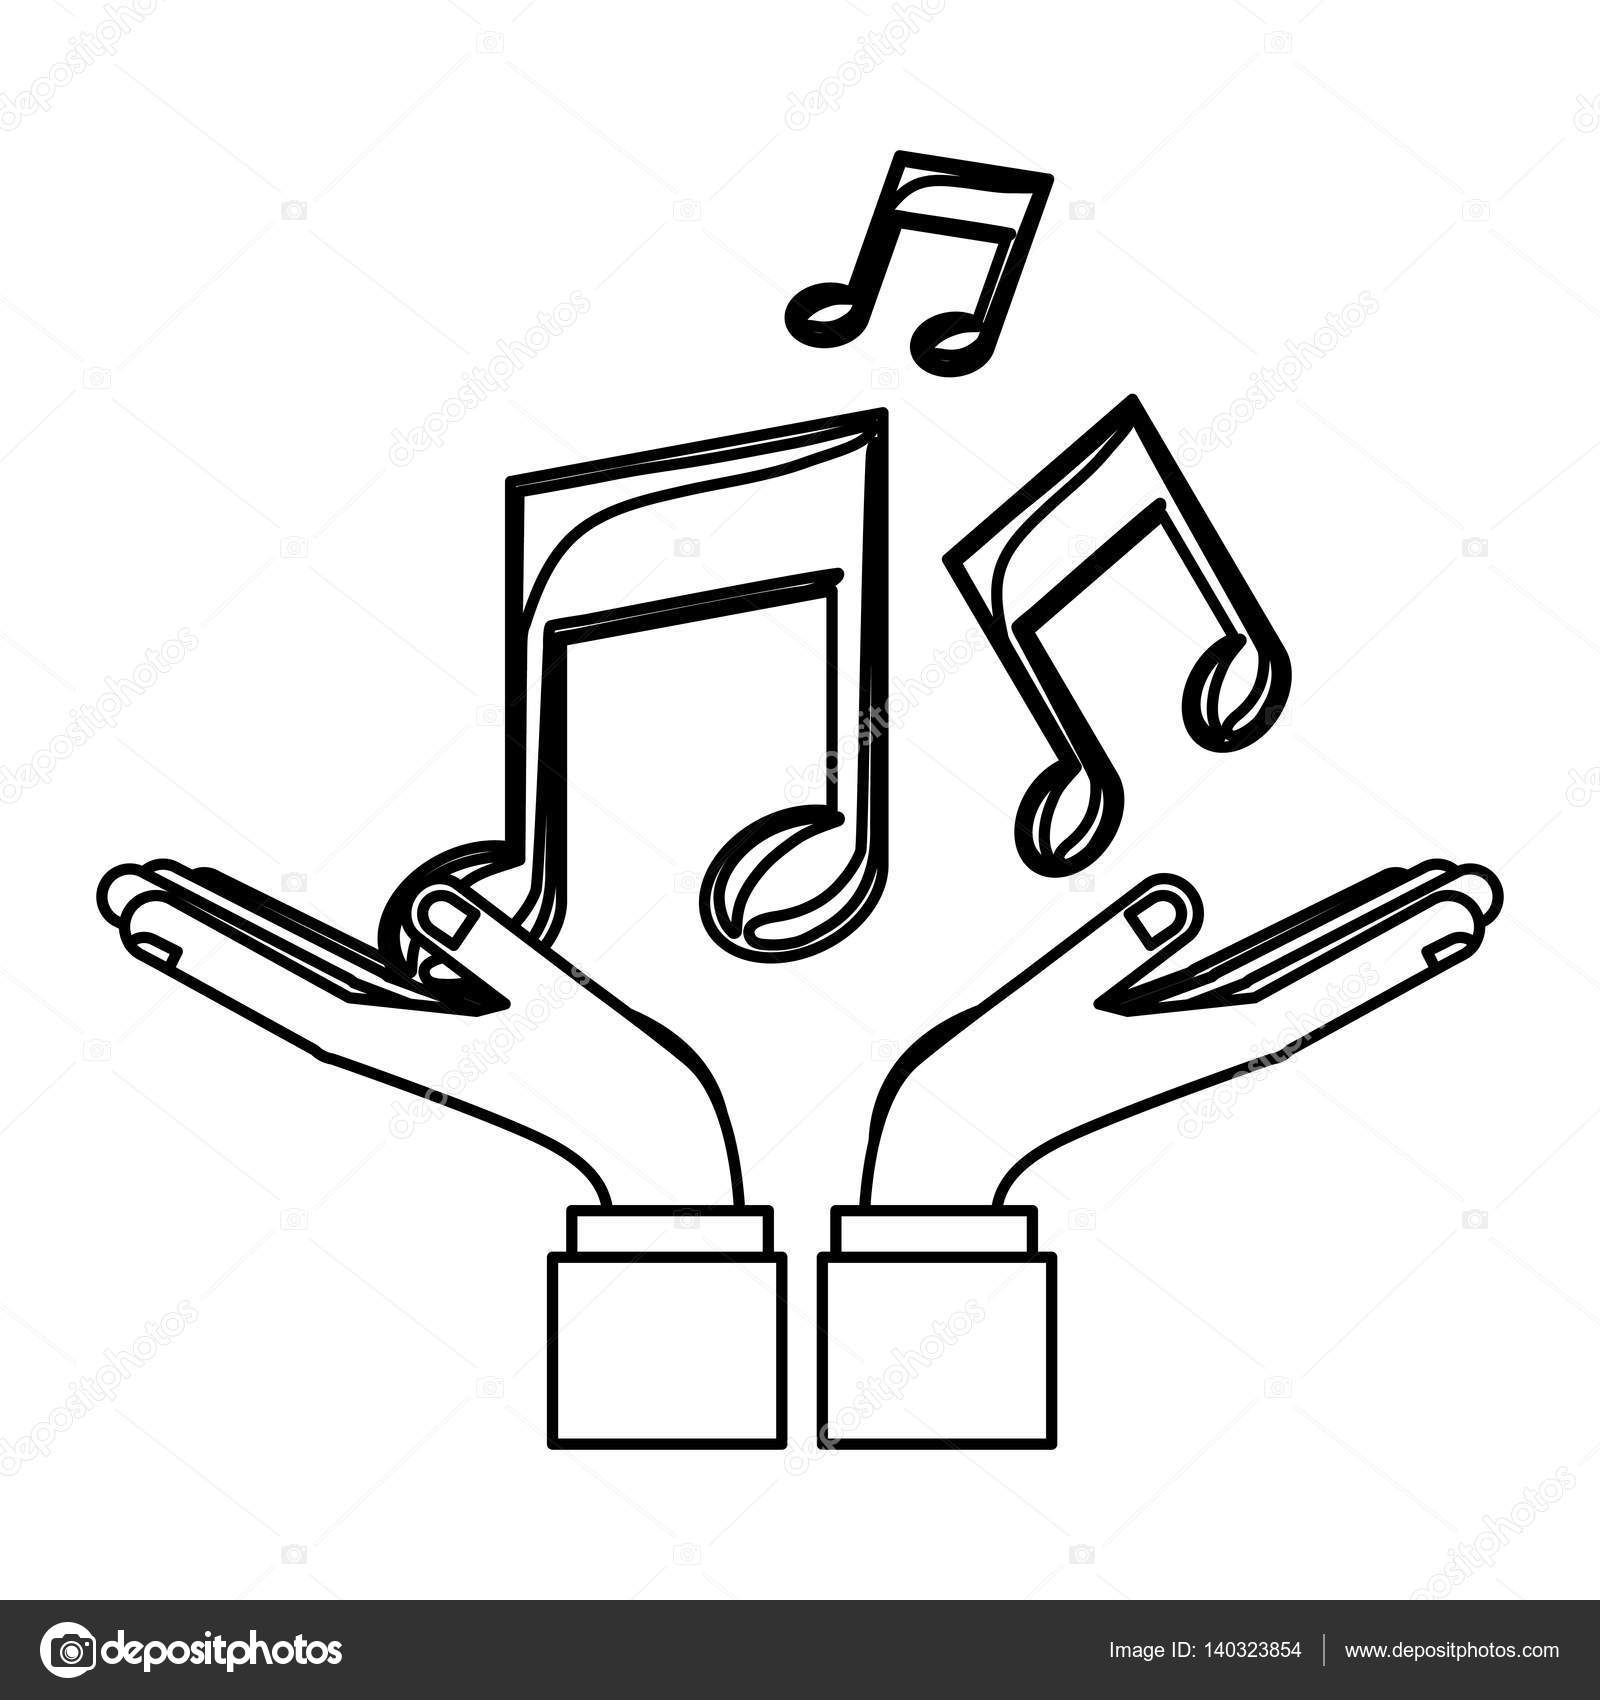 Music Notes Symbols Stock Vector Grgroupstock 140323854